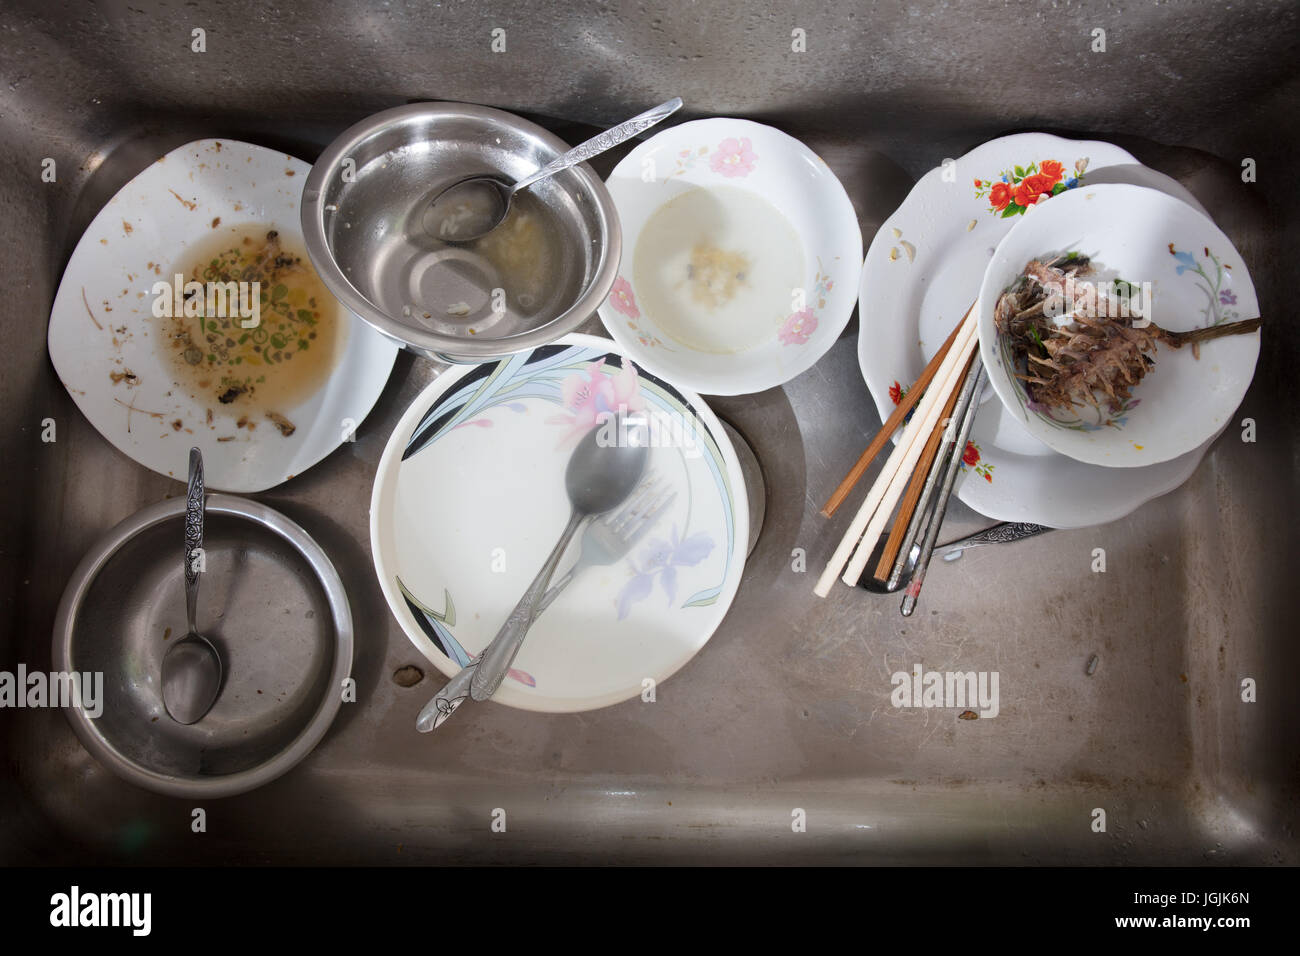 dirty plates in the sink photos dirty plates in the sink images alamy. Black Bedroom Furniture Sets. Home Design Ideas